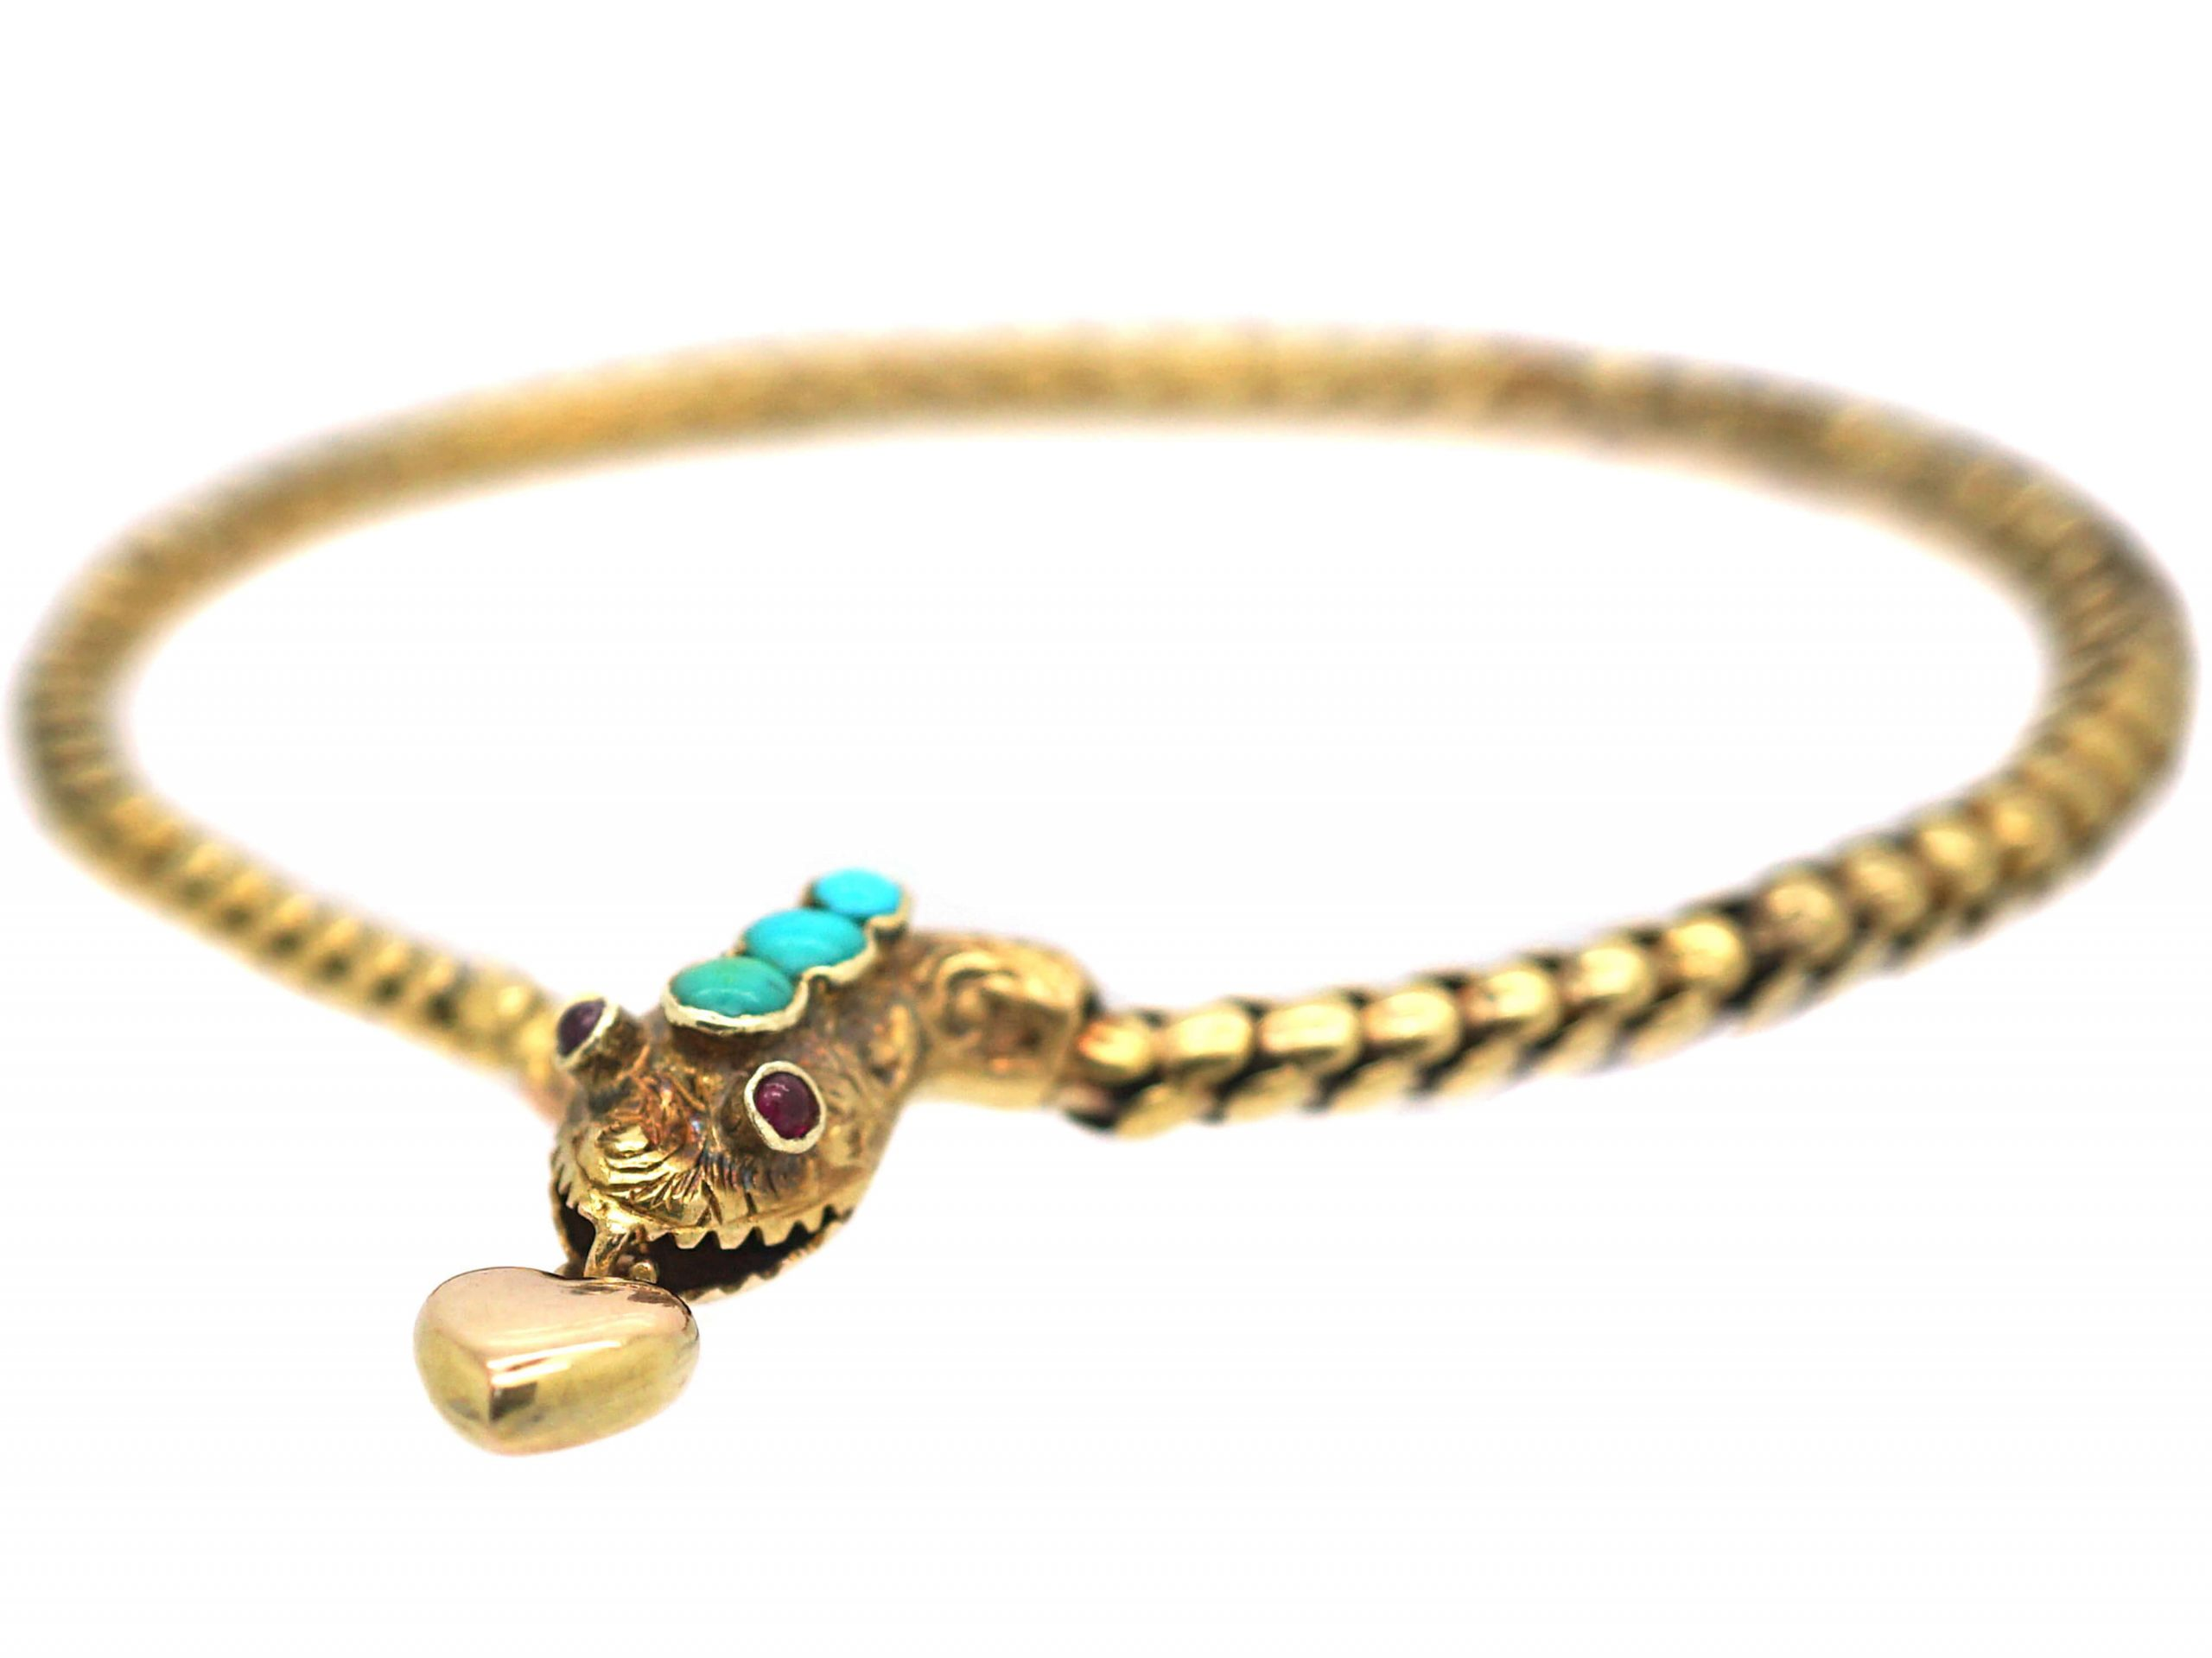 Victorian 15ct Gold Snake Bracelet Set With Turquoise & Heart